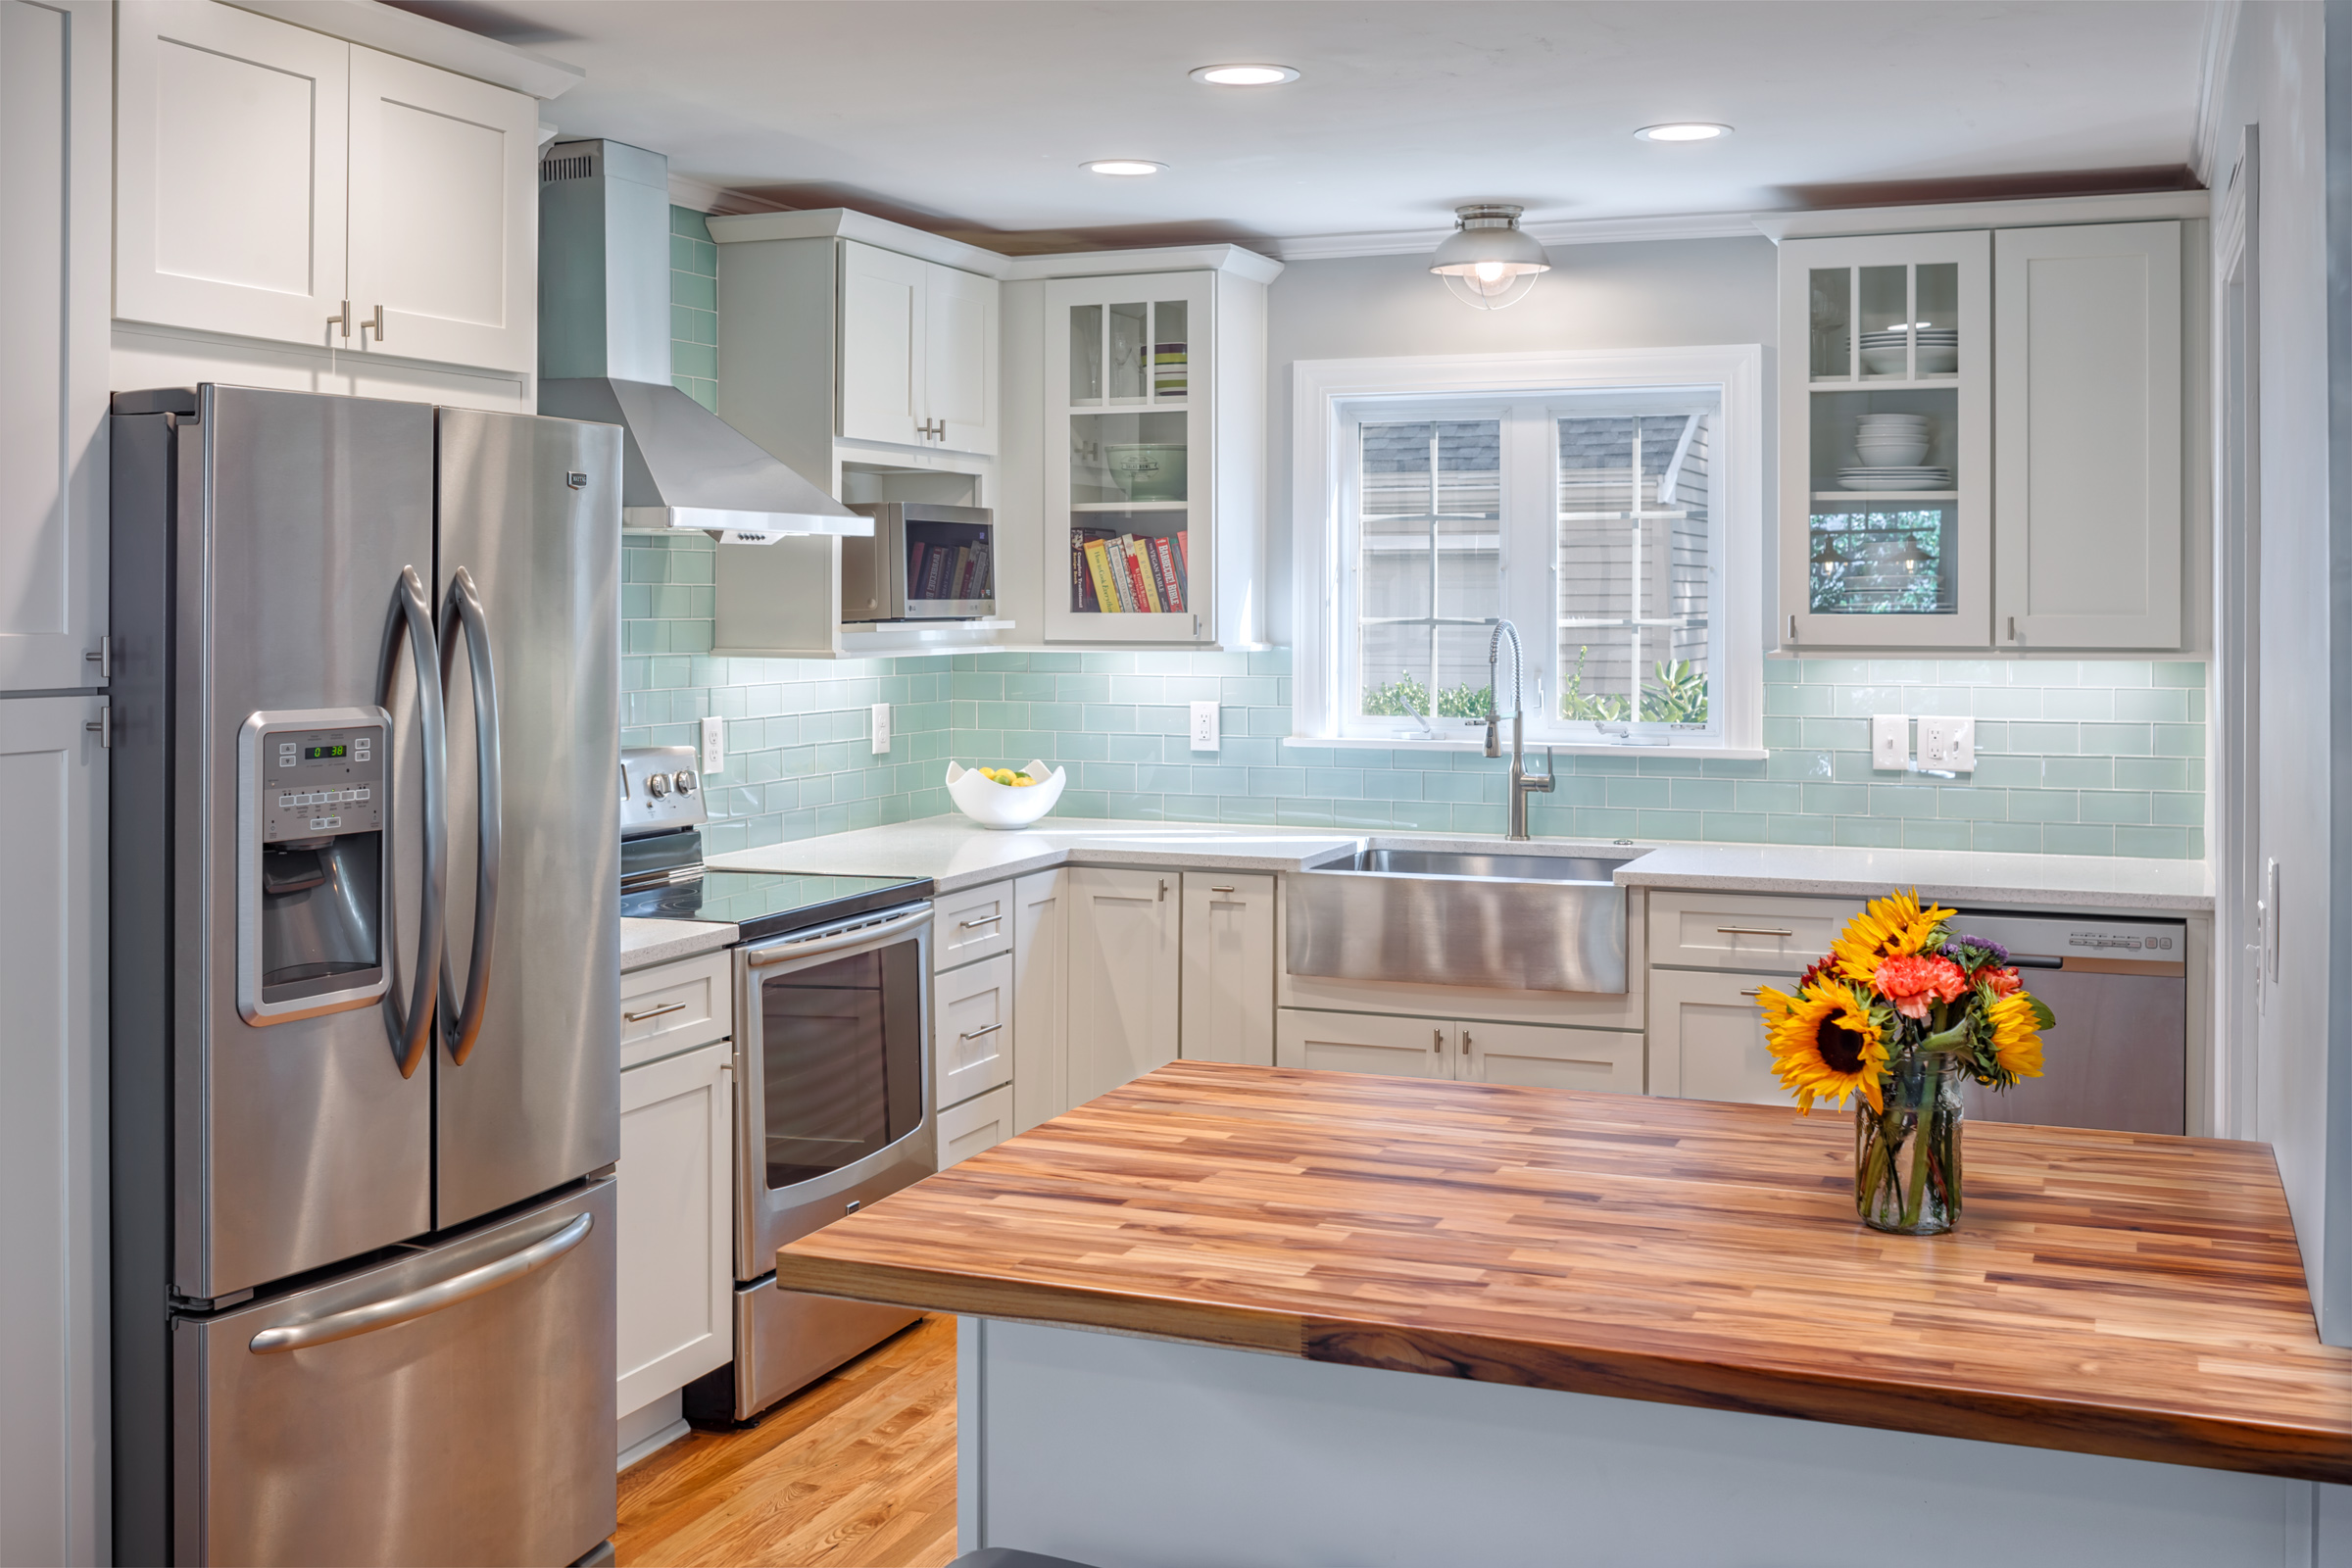 1-Kitchen from dining room.jpg